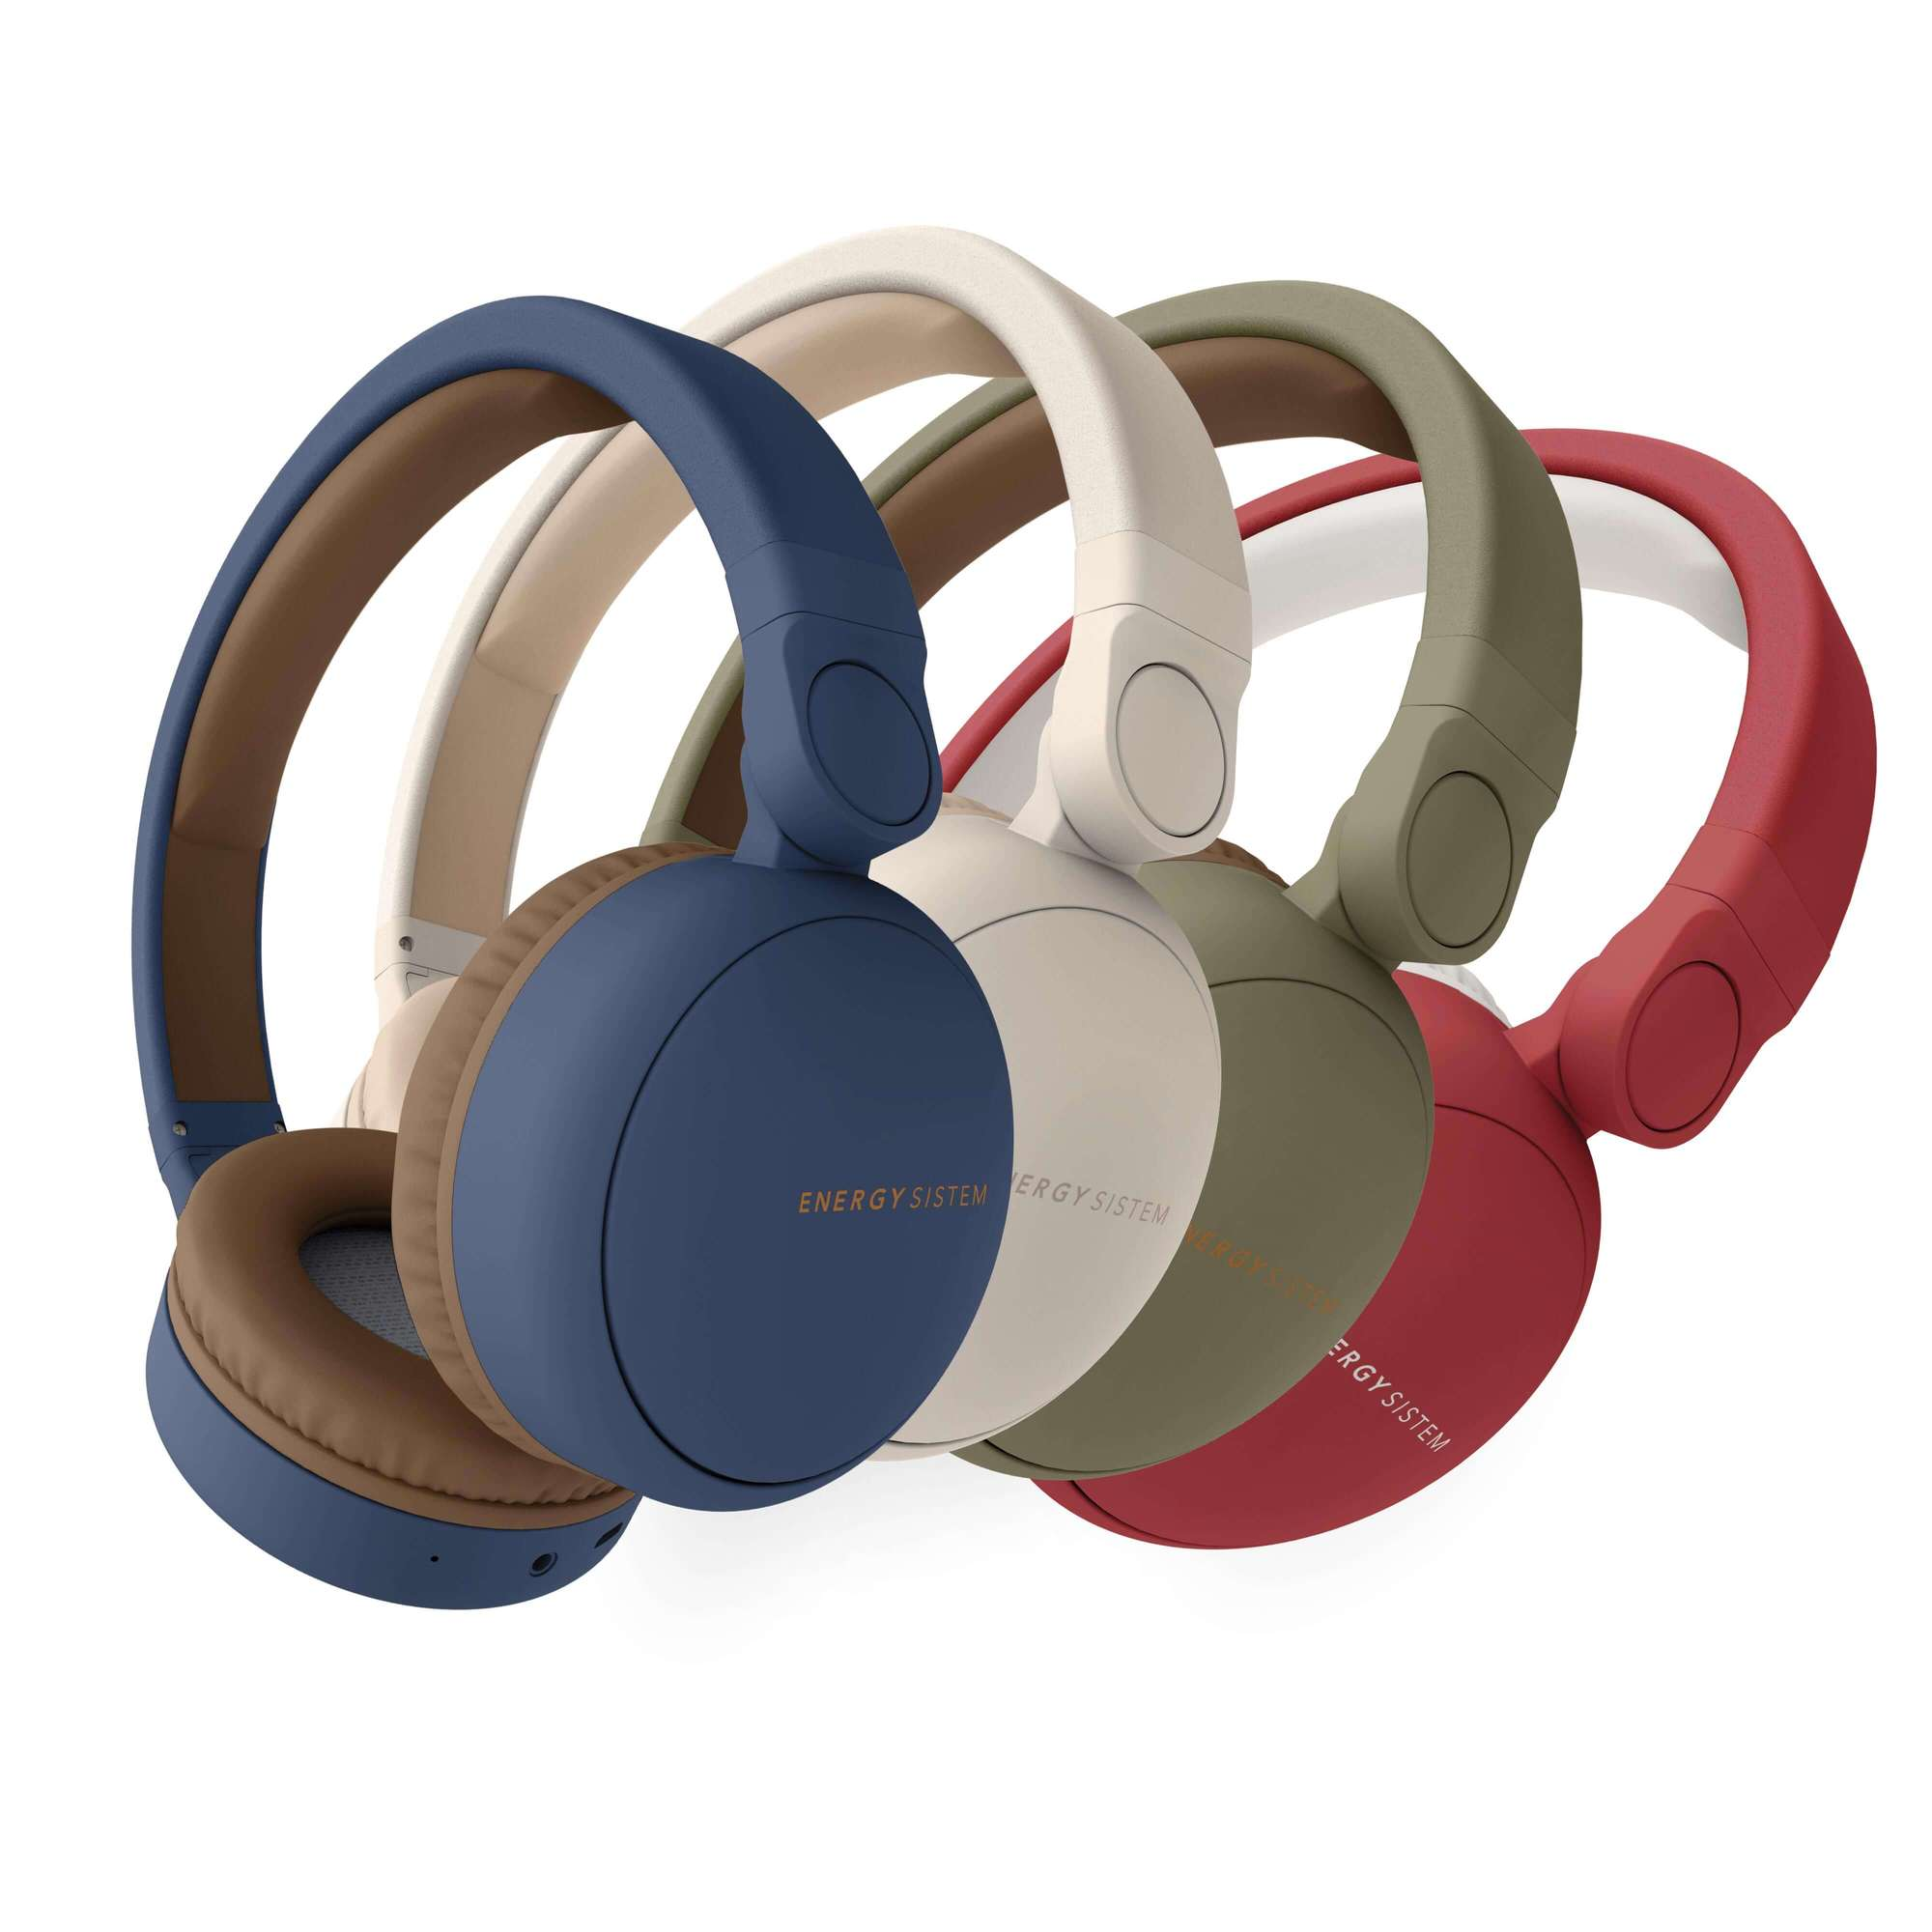 Energy Headphones 2 1 - Energy Headphones 2 Bluetooth: los nuevos auriculares circumaurales de Energy Sistem